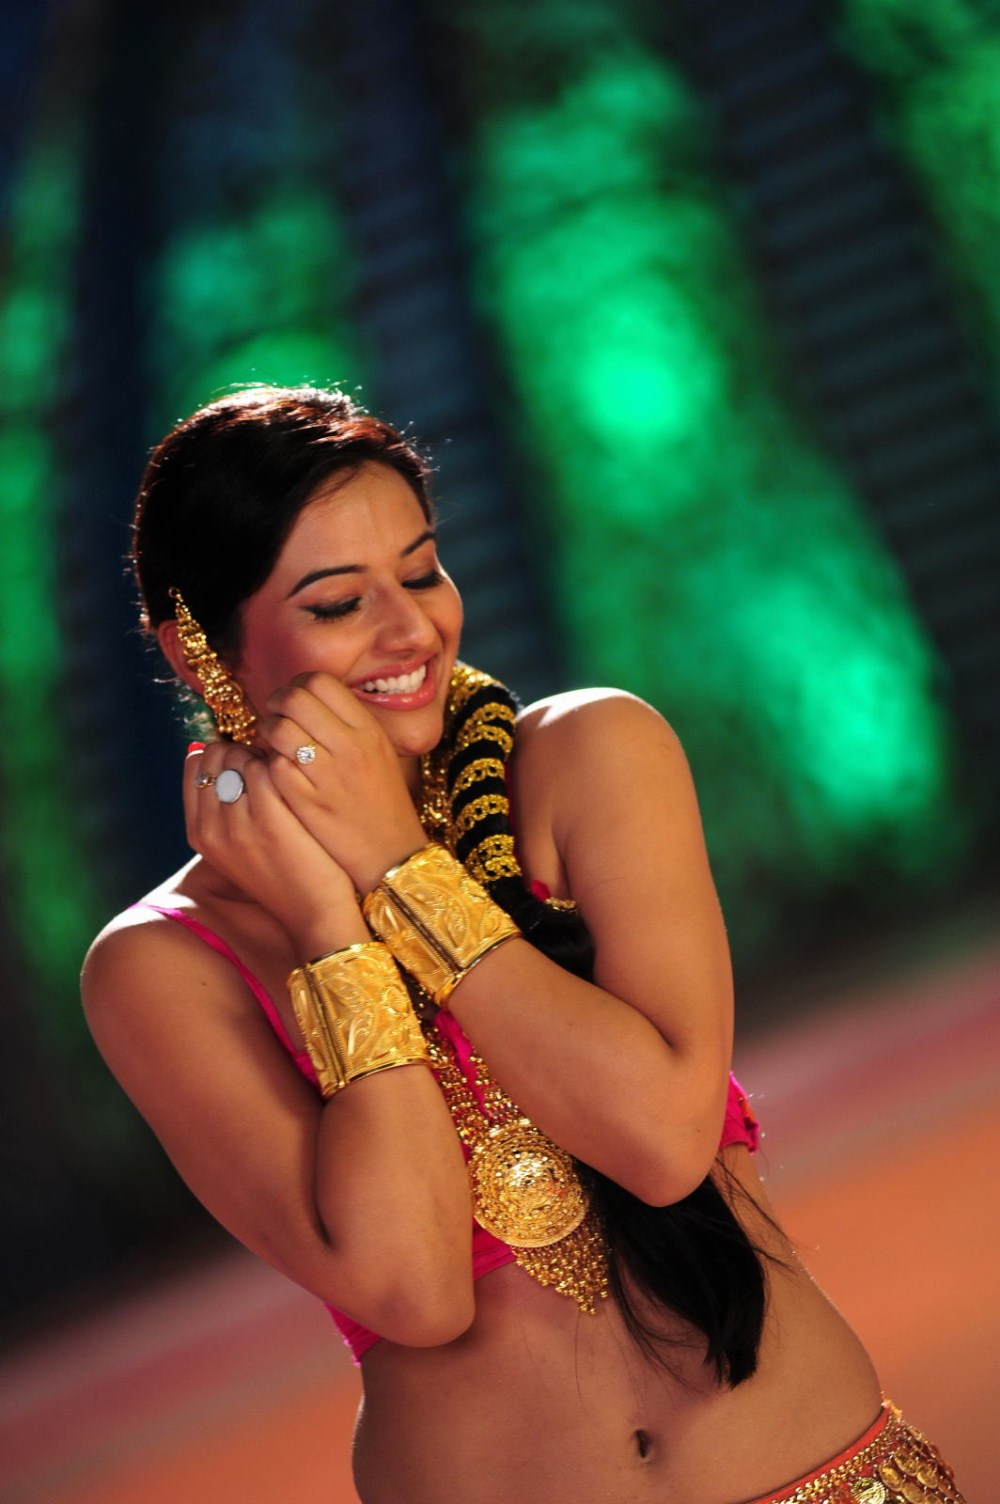 Glorious ethnic Isha chawla dancing images true indian expression